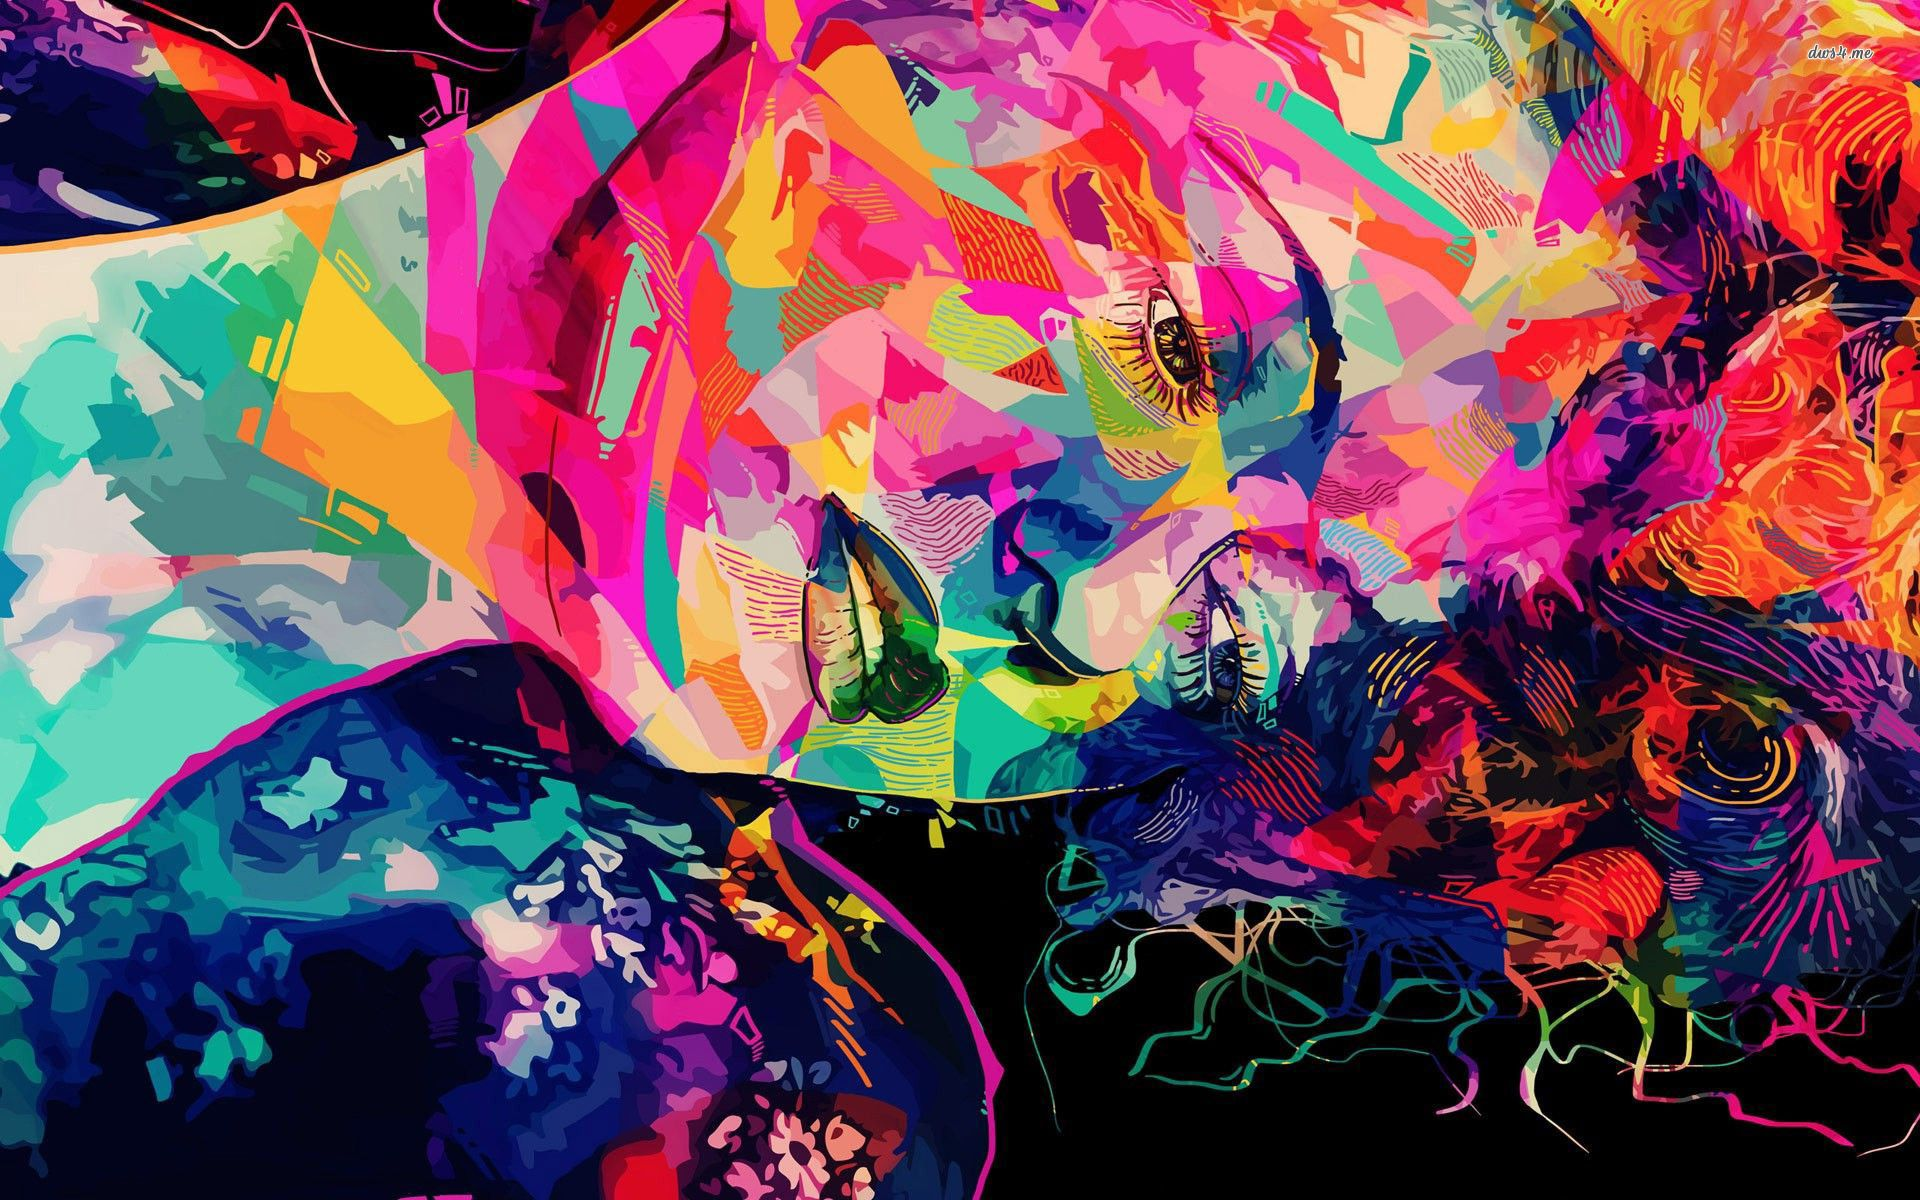 Artistic Abstract Wallpaper 1080p Free Download (With